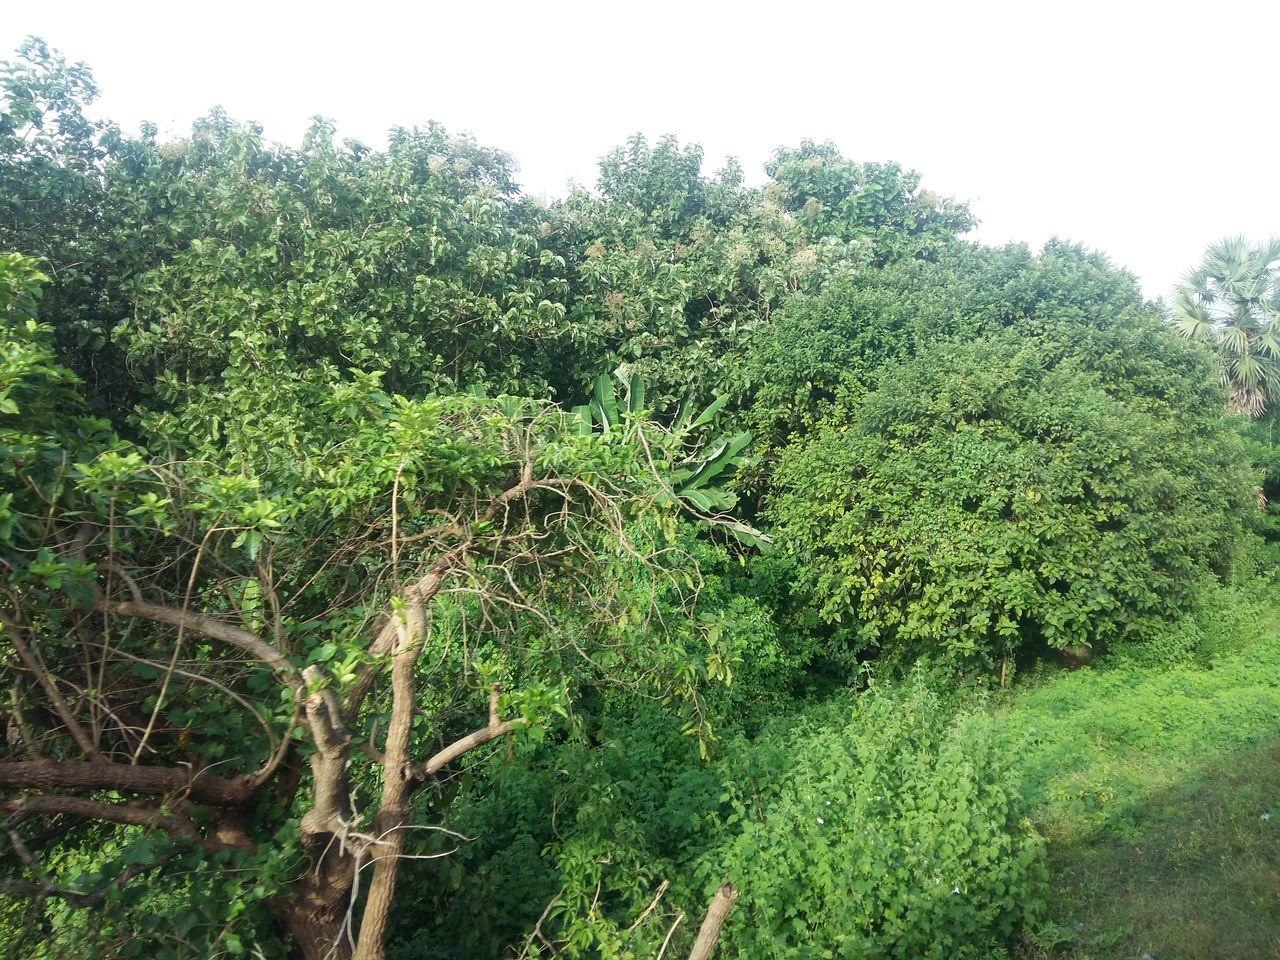 growth, nature, tree, green, no people, tranquility, green color, field, plant, outdoors, day, beauty in nature, foliage